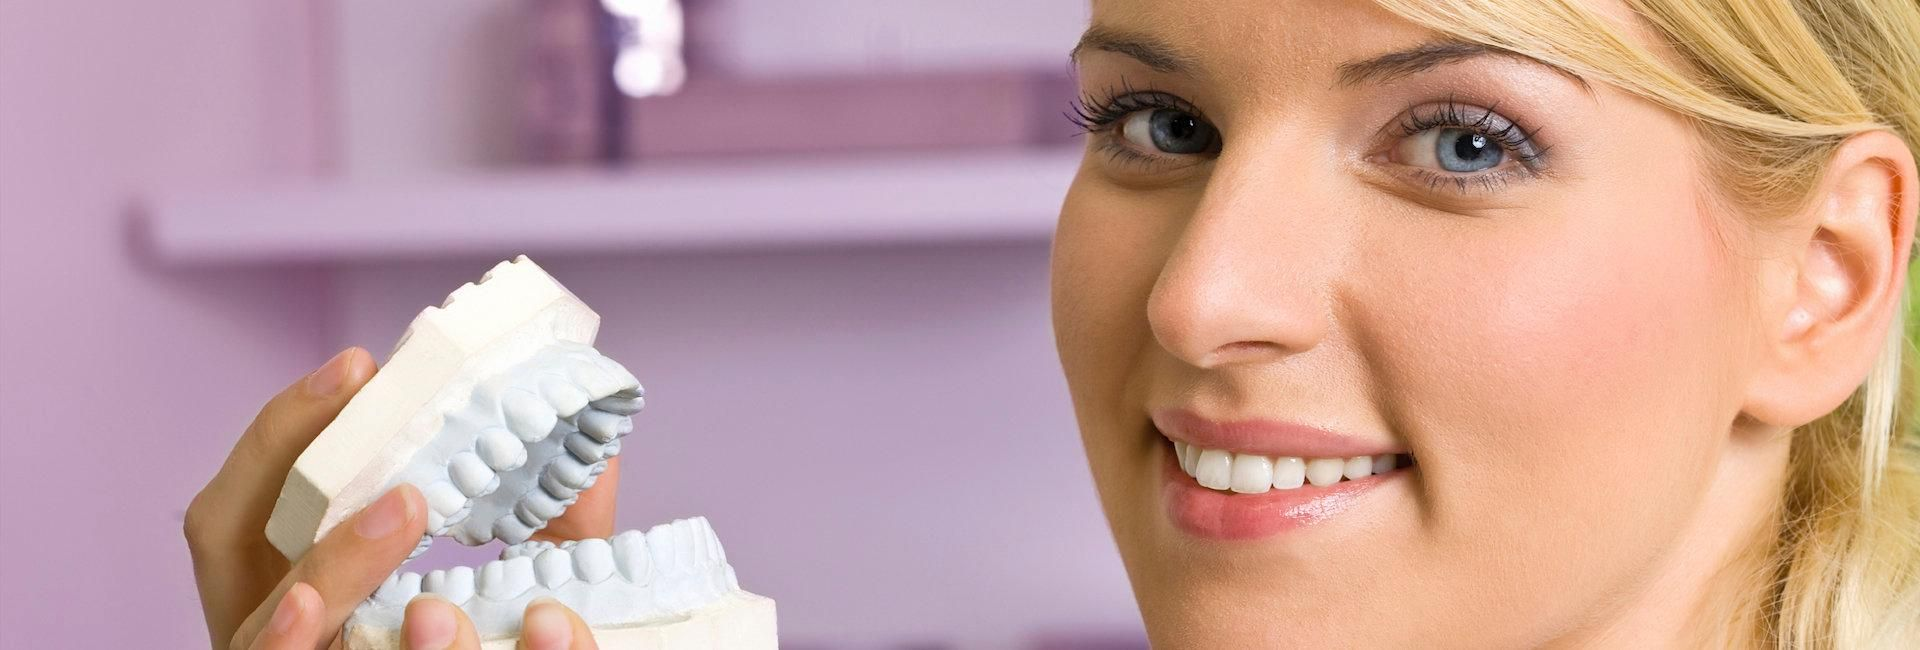 There are lot of benefits of Cosmetic dentistry, but it is